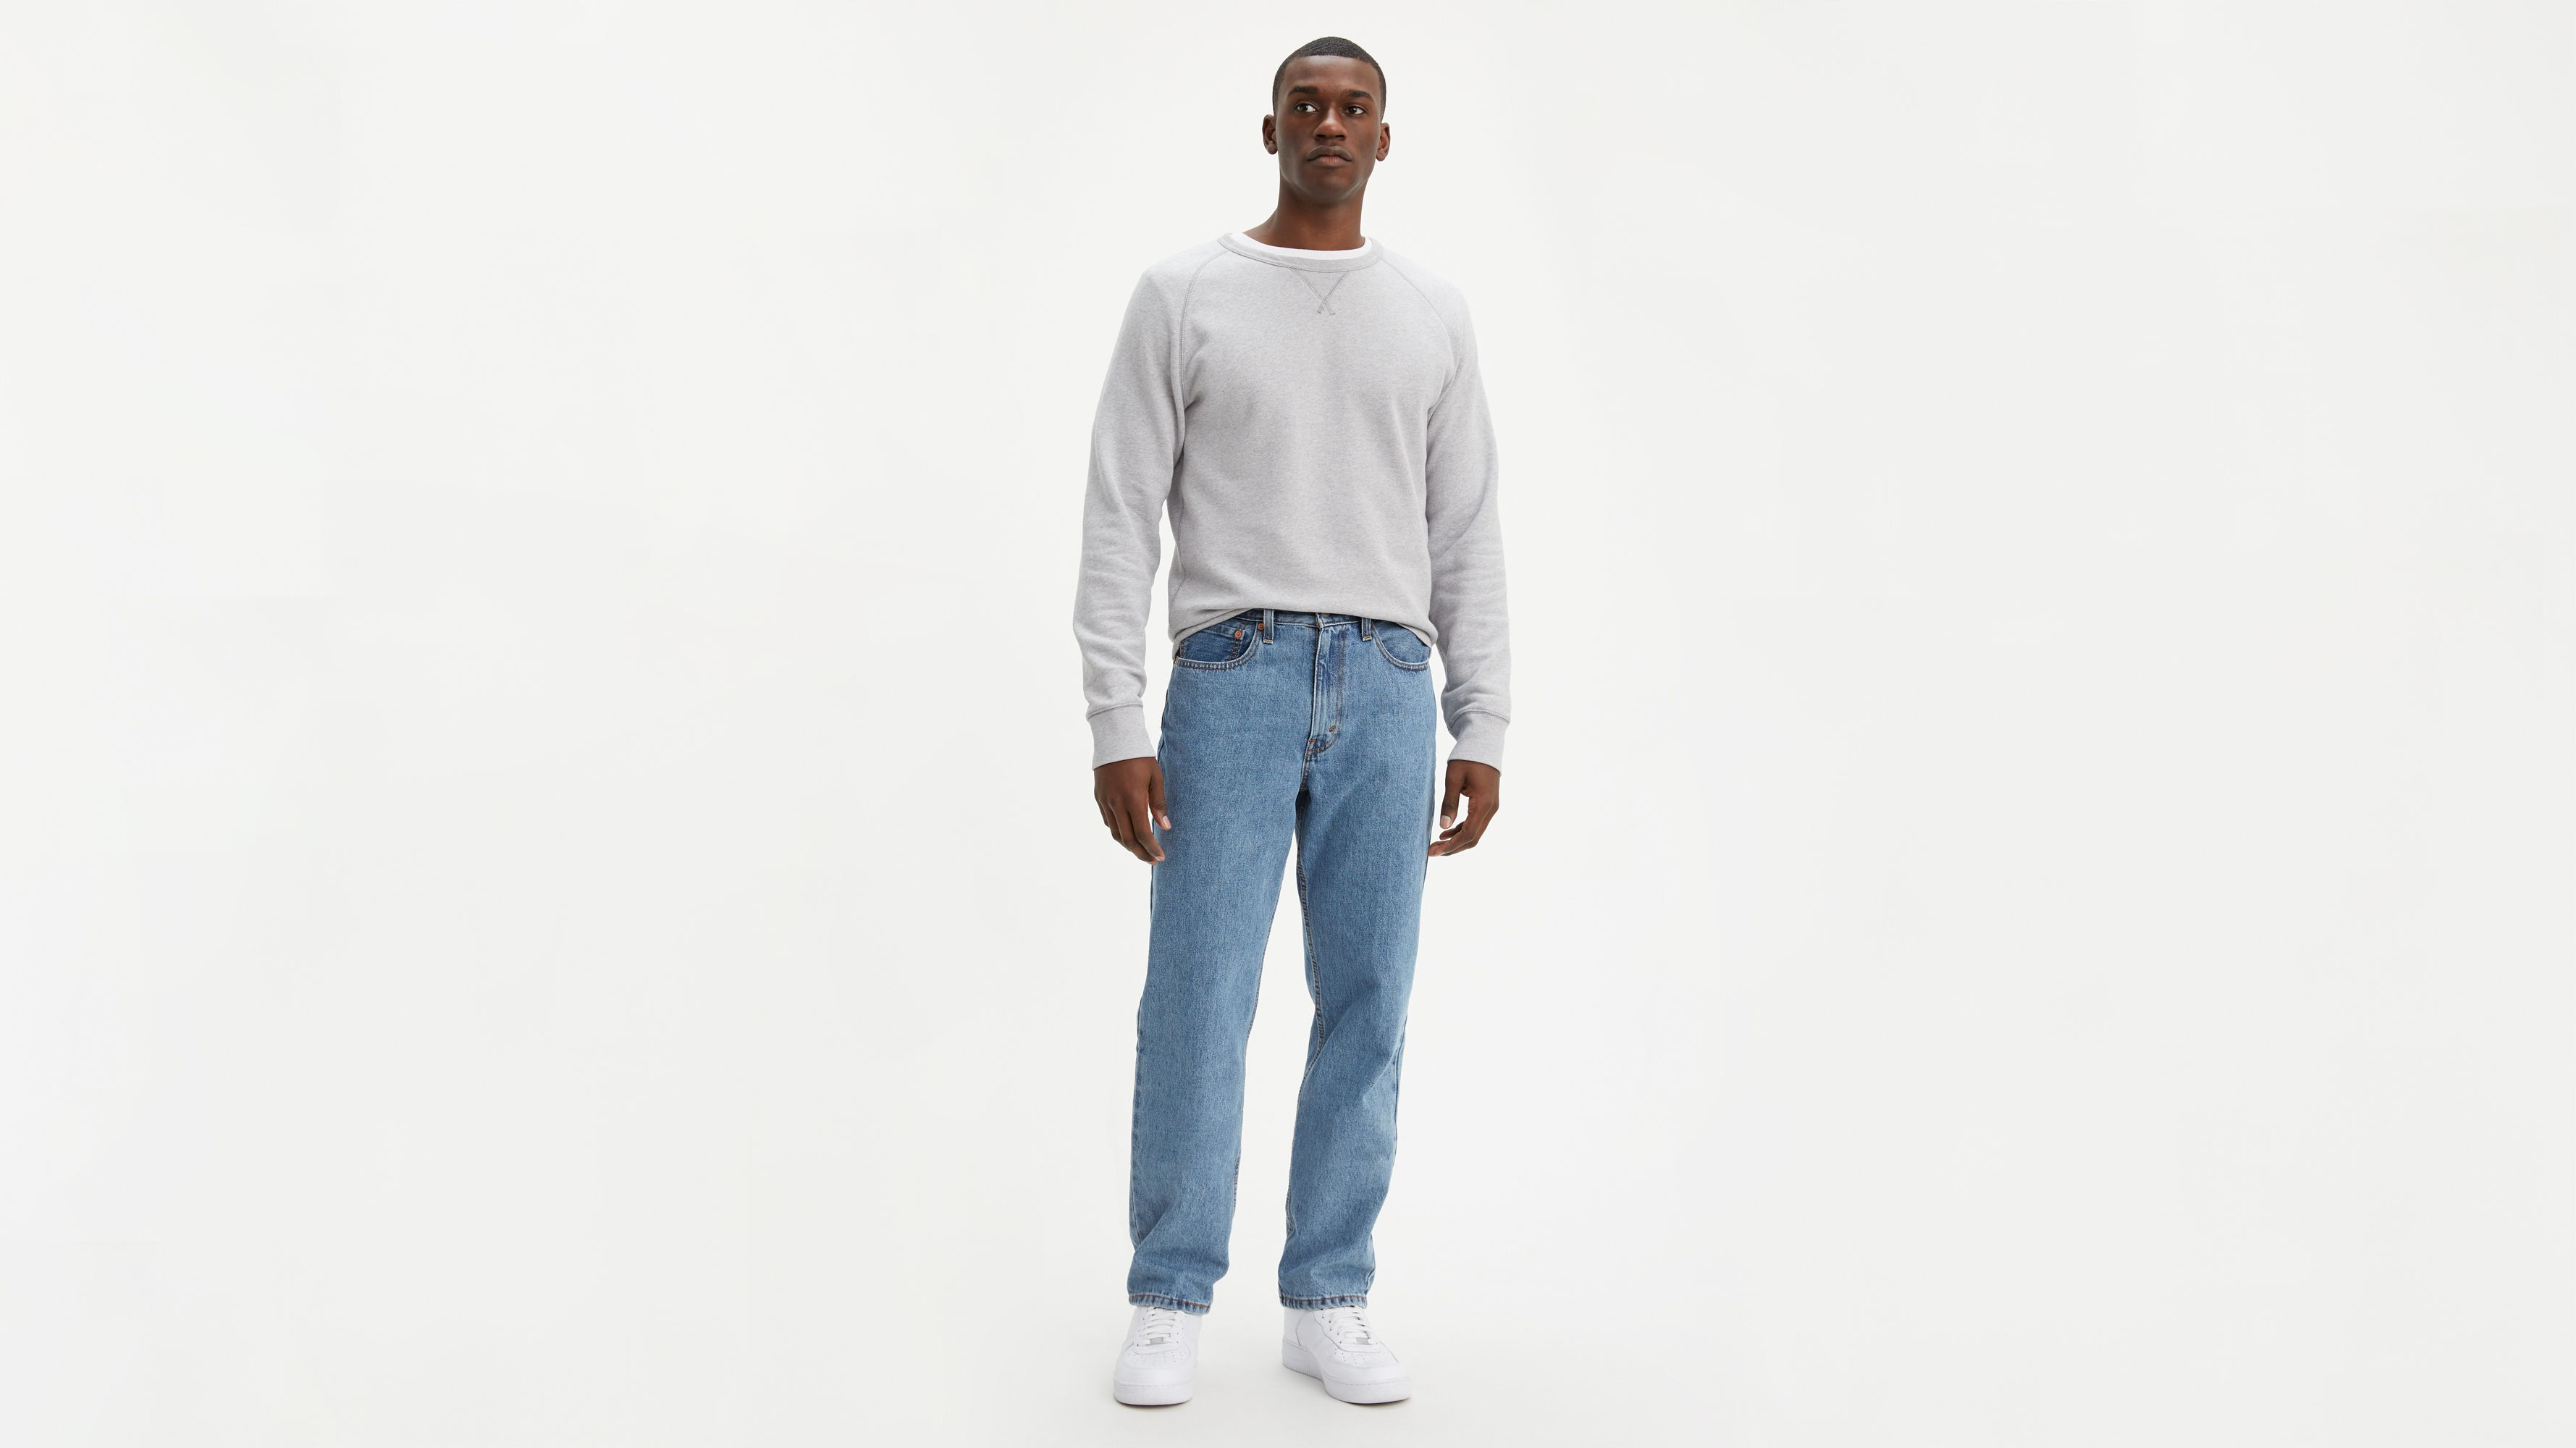 Men's Relaxed Fit Jeans Shop Relaxed Fit Jeans for Men